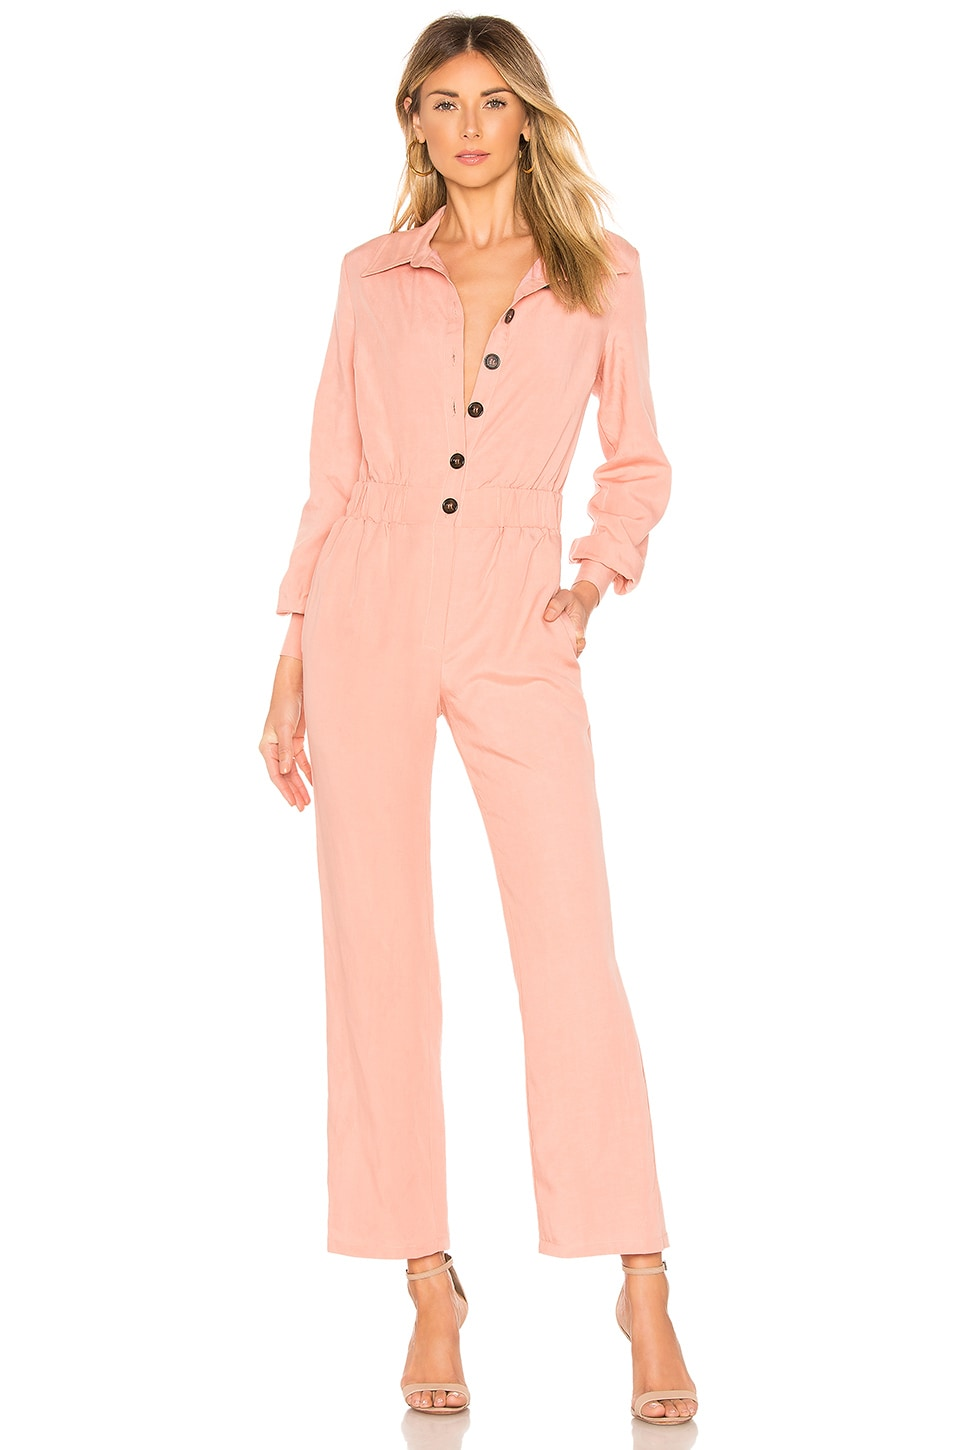 Lovers + Friends Karina Jumpsuit in Blush